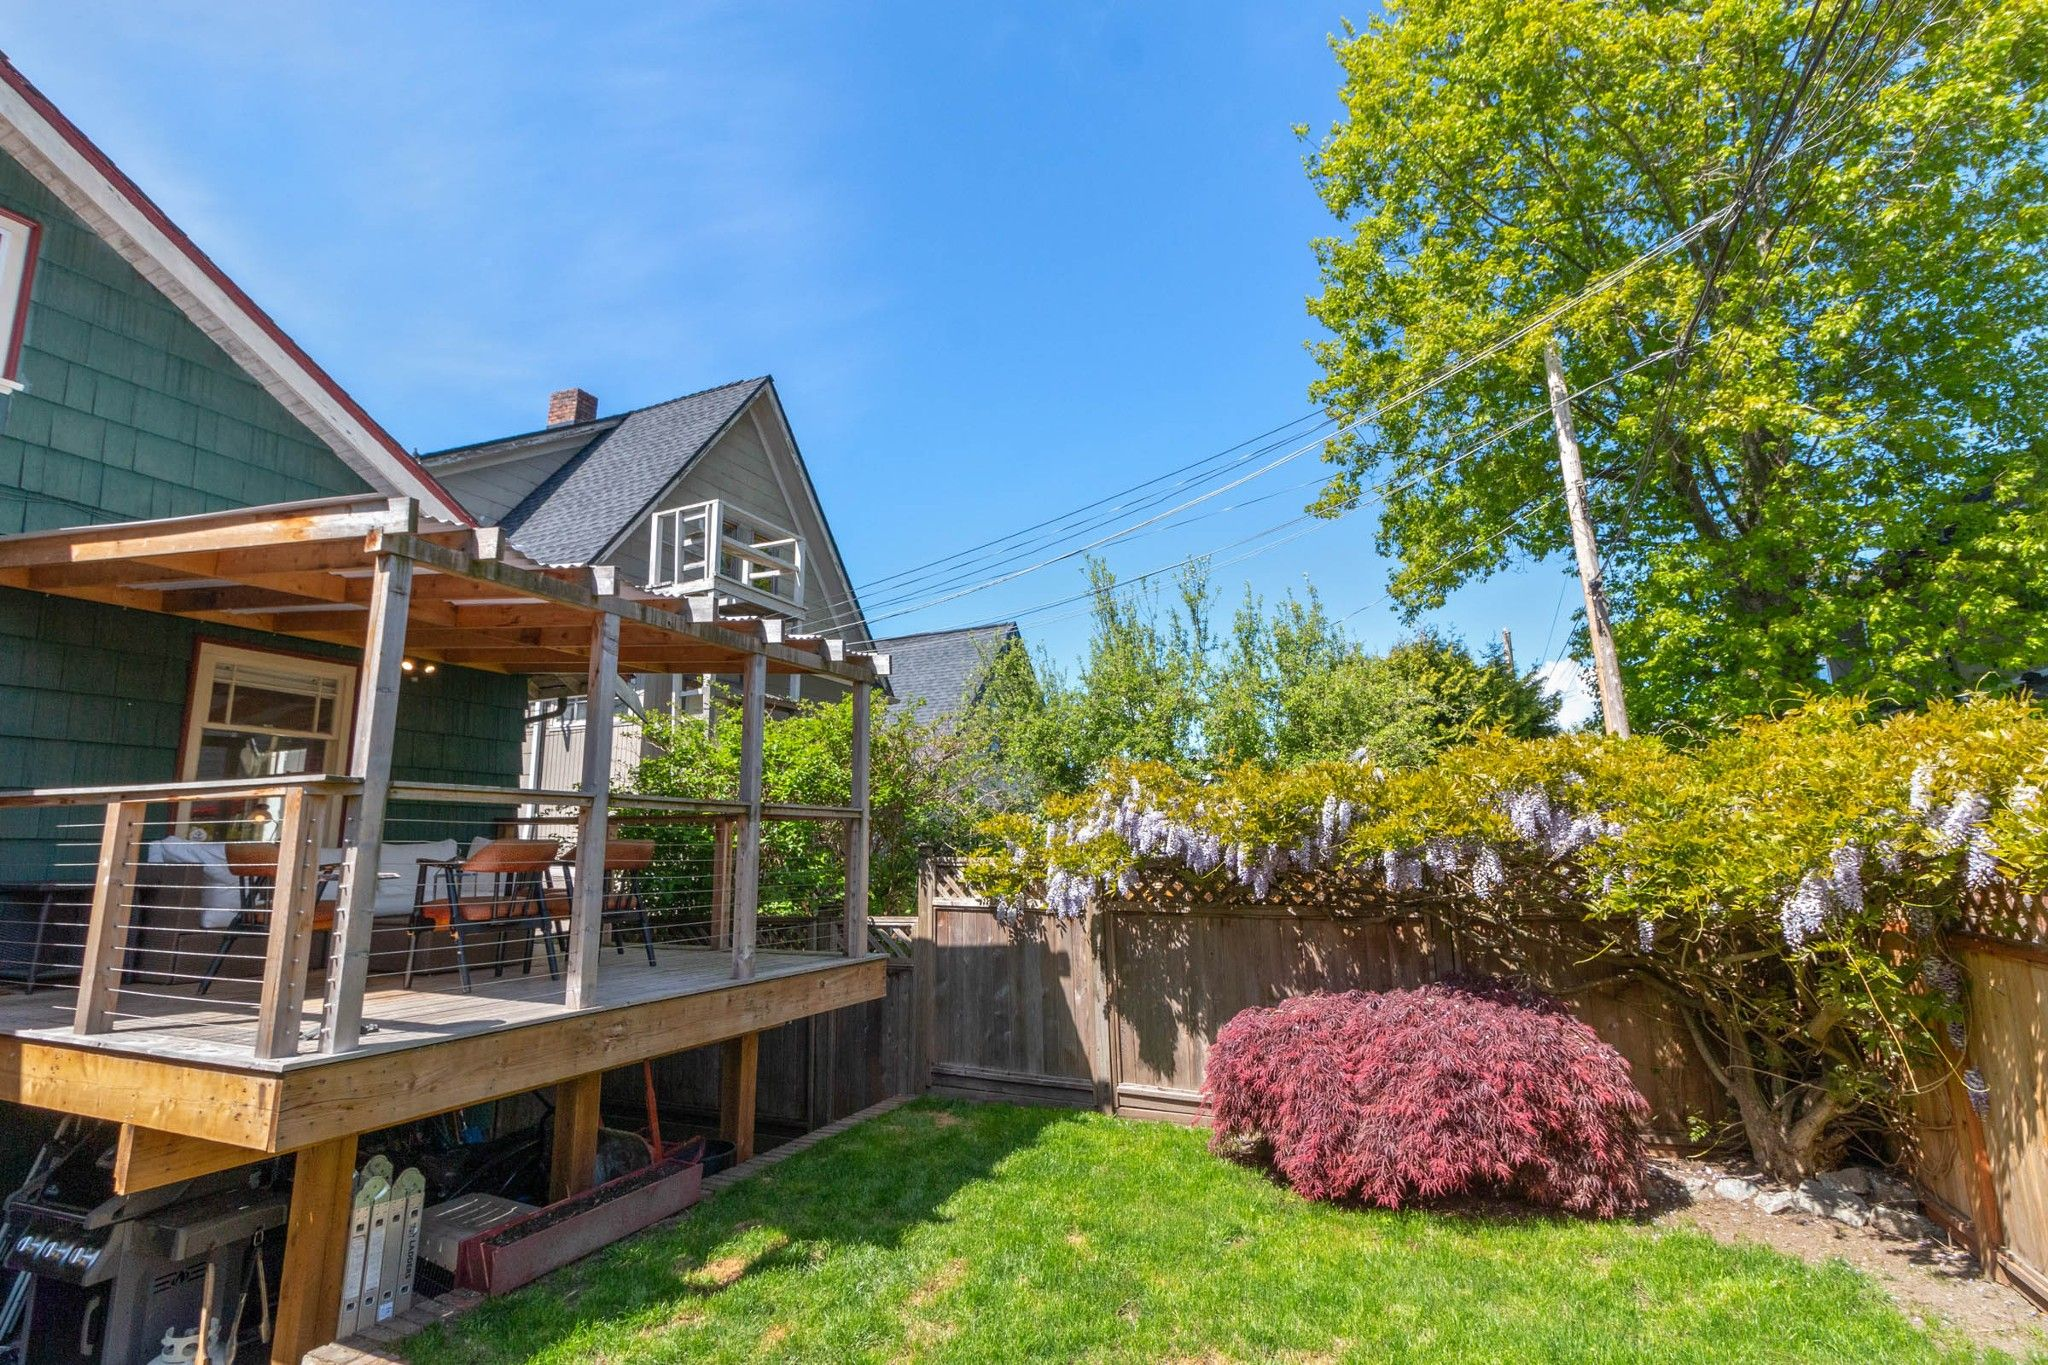 Photo 24: Photos: 3742 ONTARIO Street in Vancouver: Main House for sale (Vancouver East)  : MLS®# R2580004